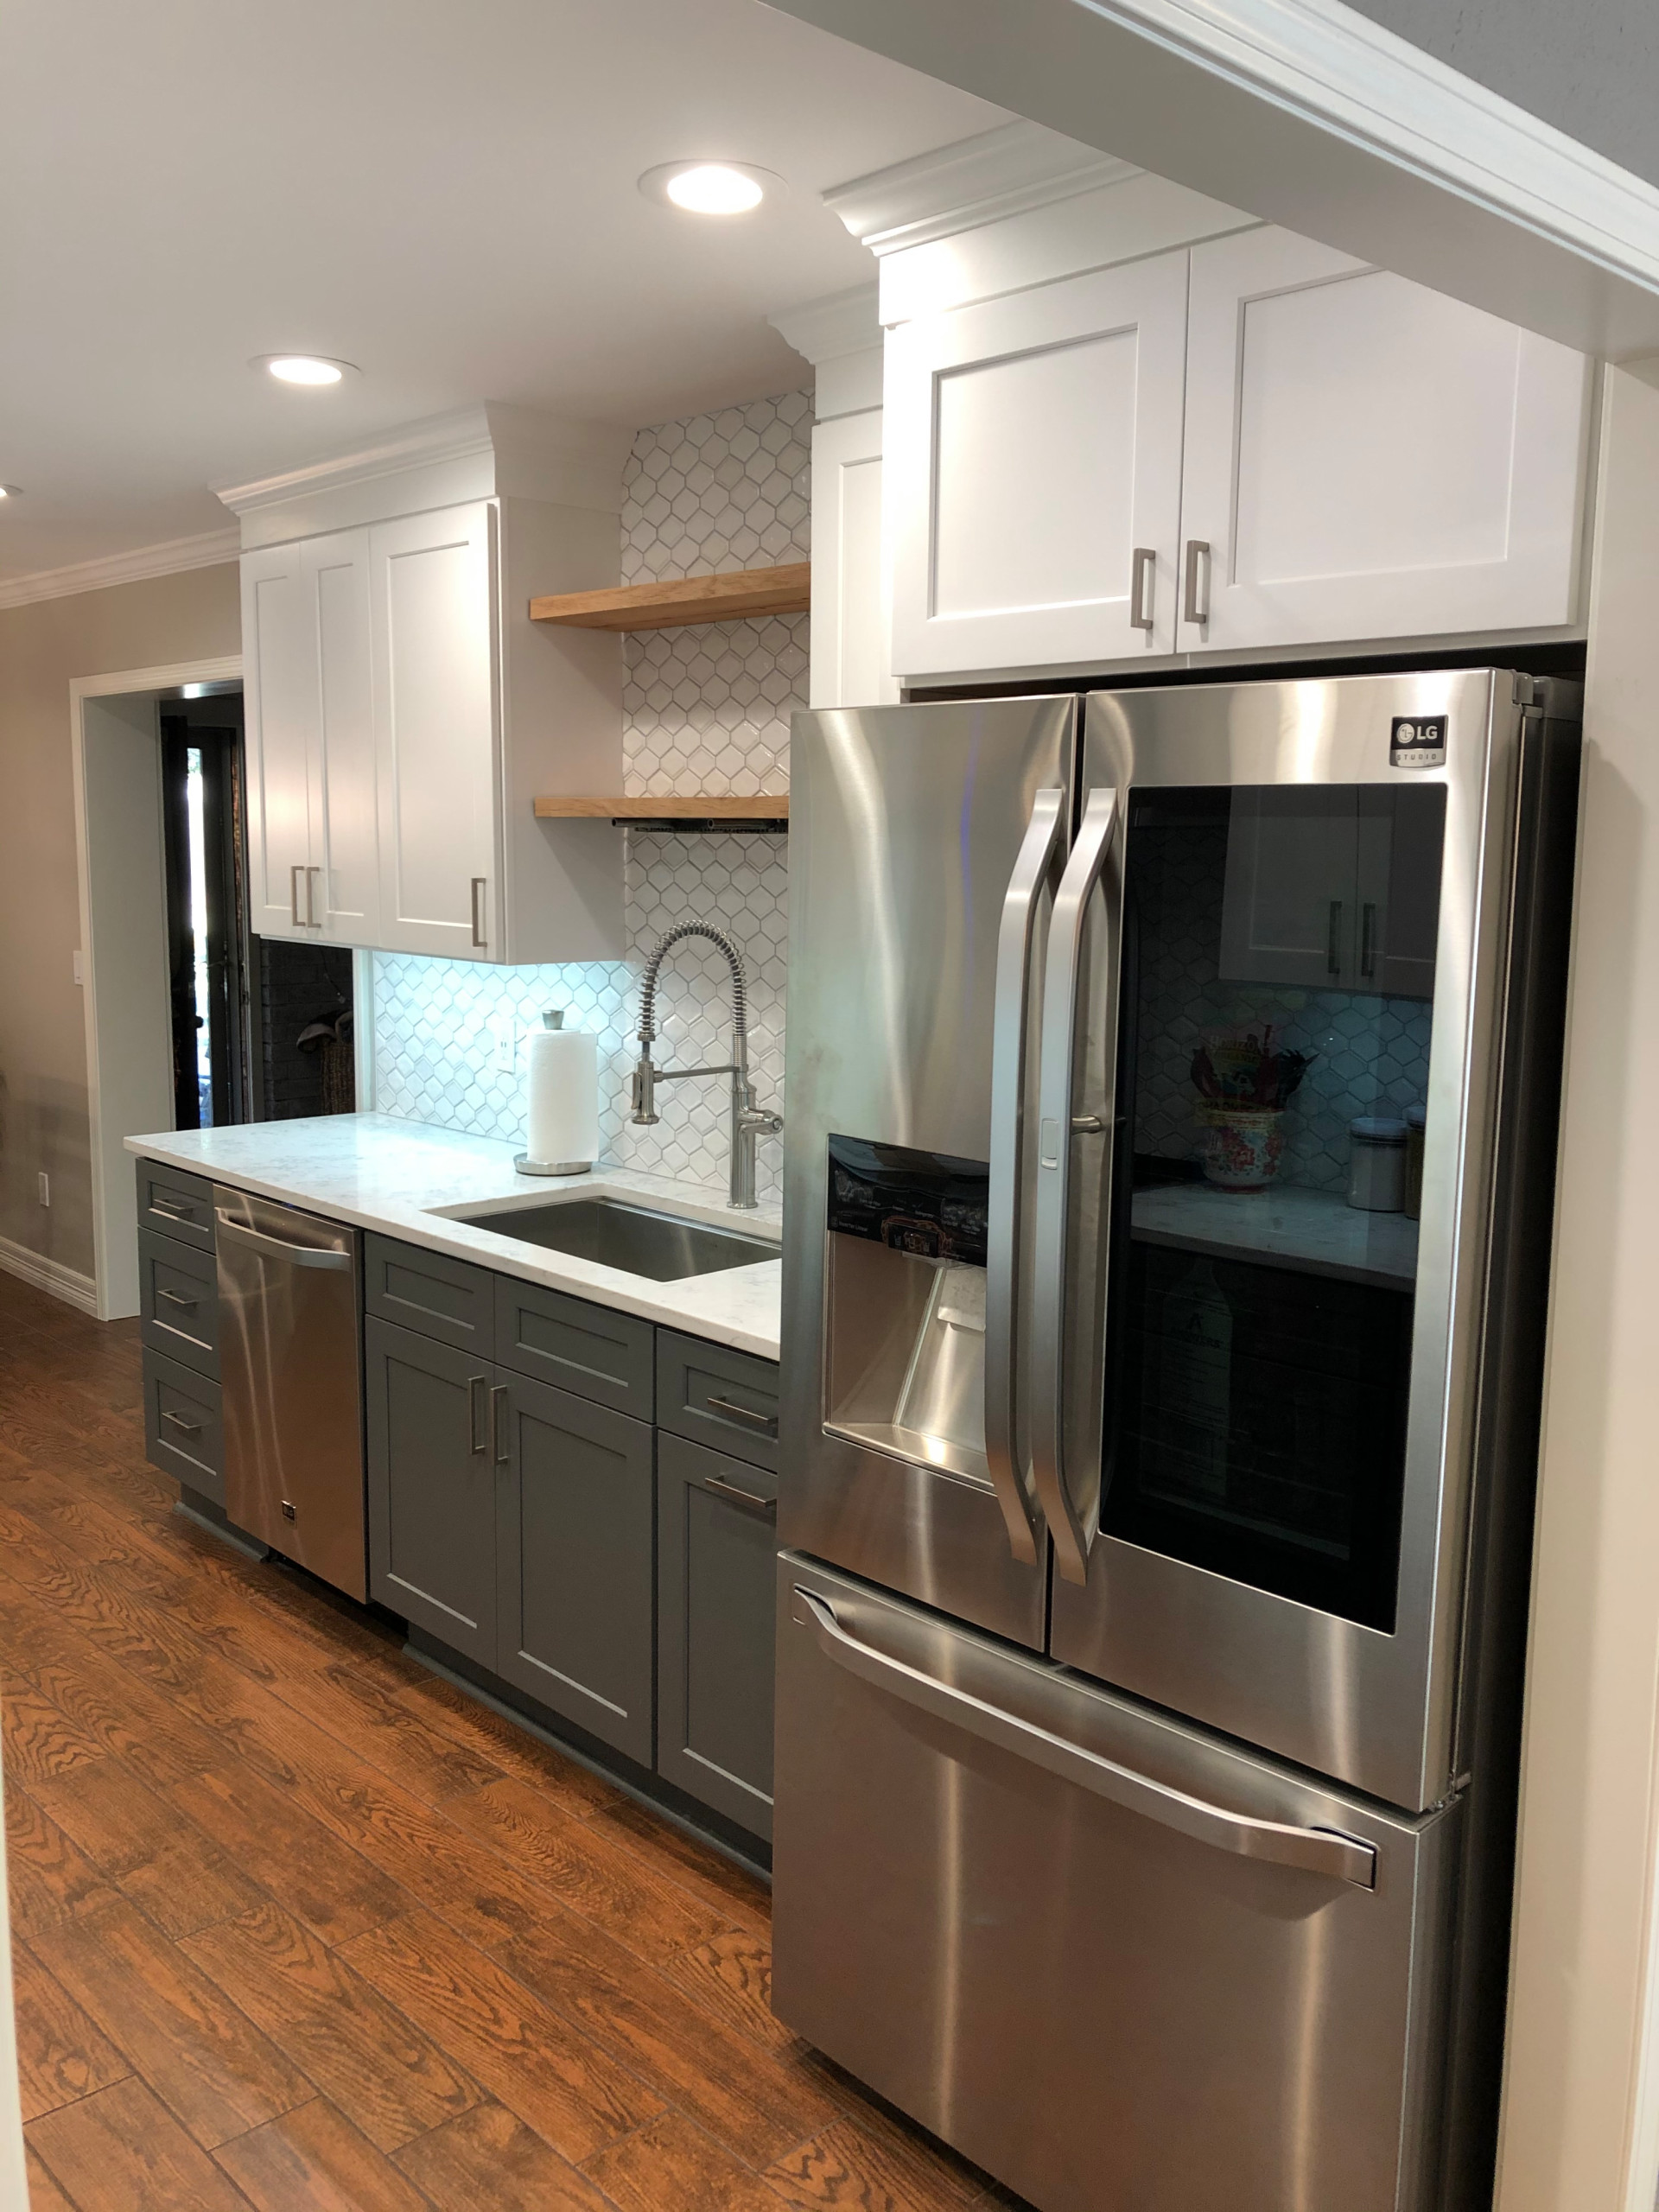 Kitchen and Bathroom Remodel to Last